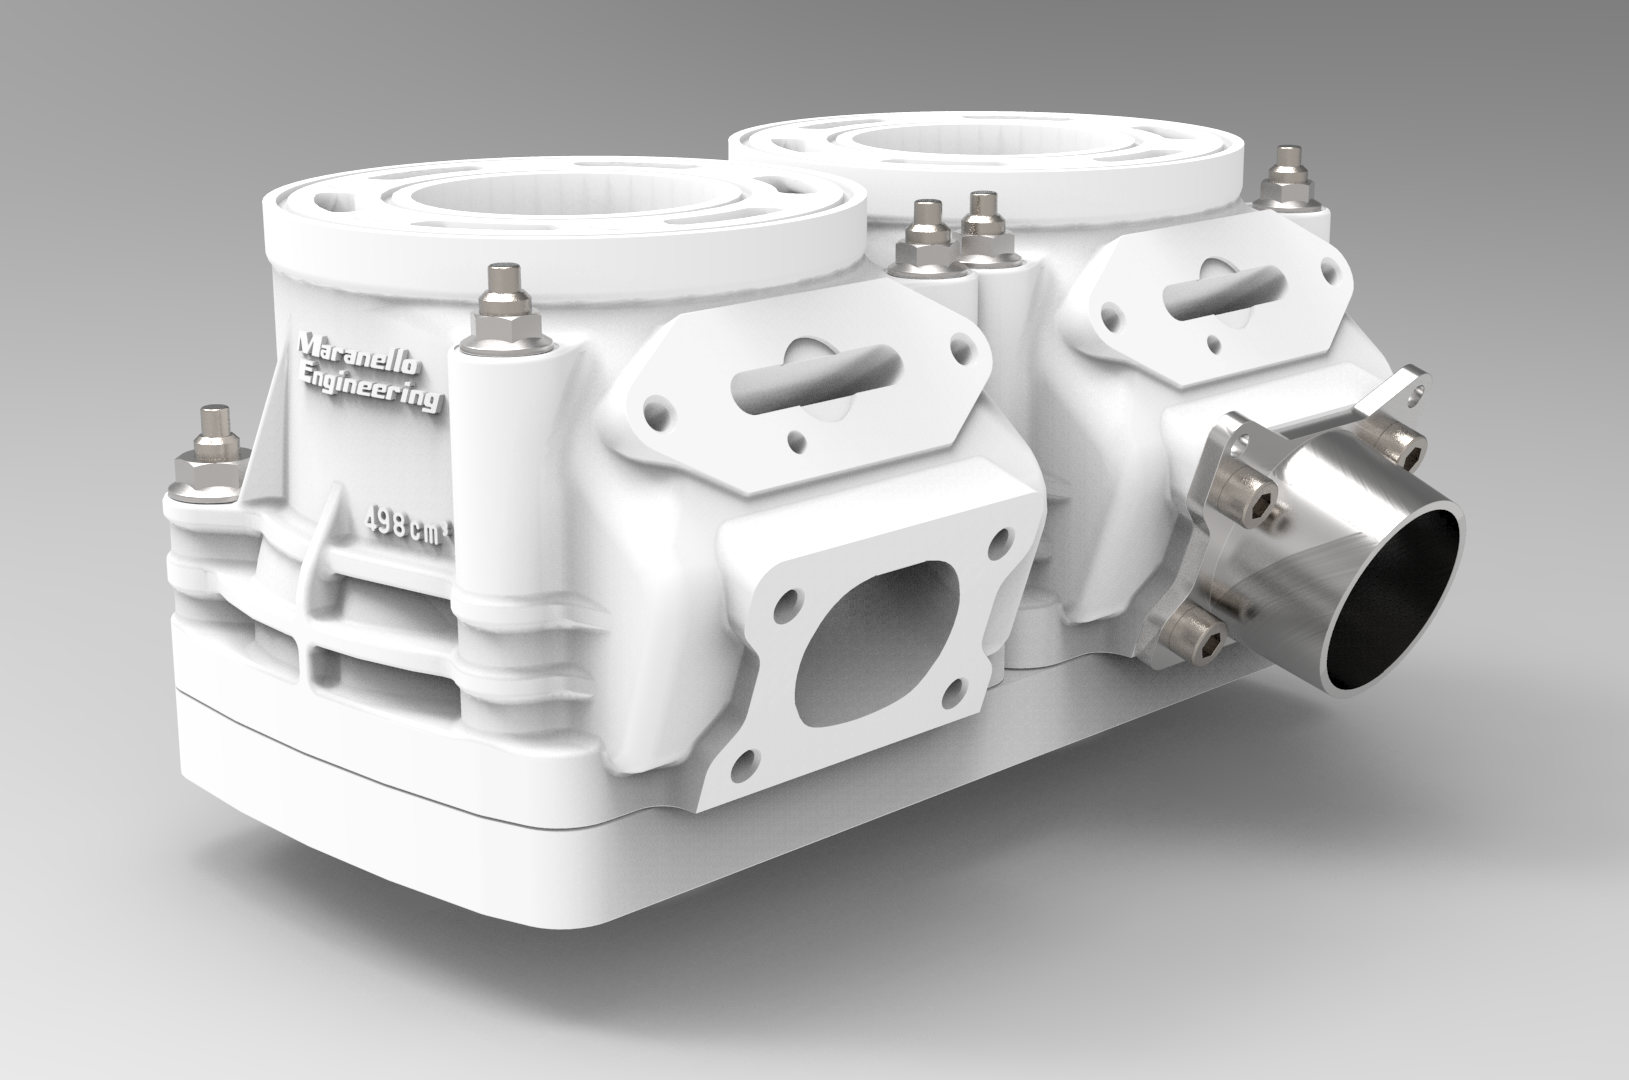 Maranello Engineering, Engines with a Passion